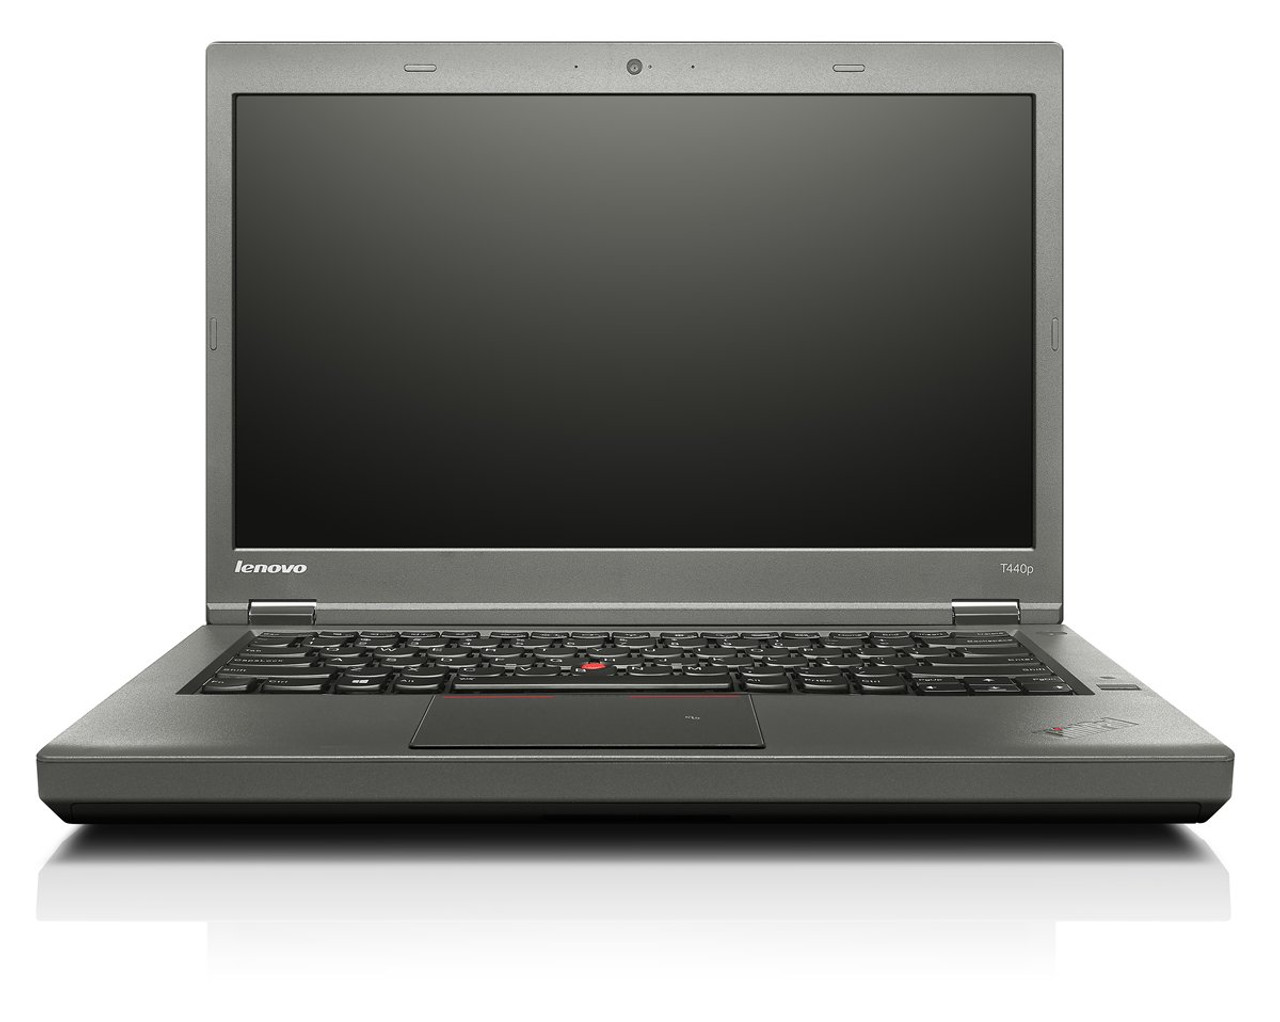 IBM Lenovo Thinkpad T440p Laptop Core i5 2.5GHz, 8GB